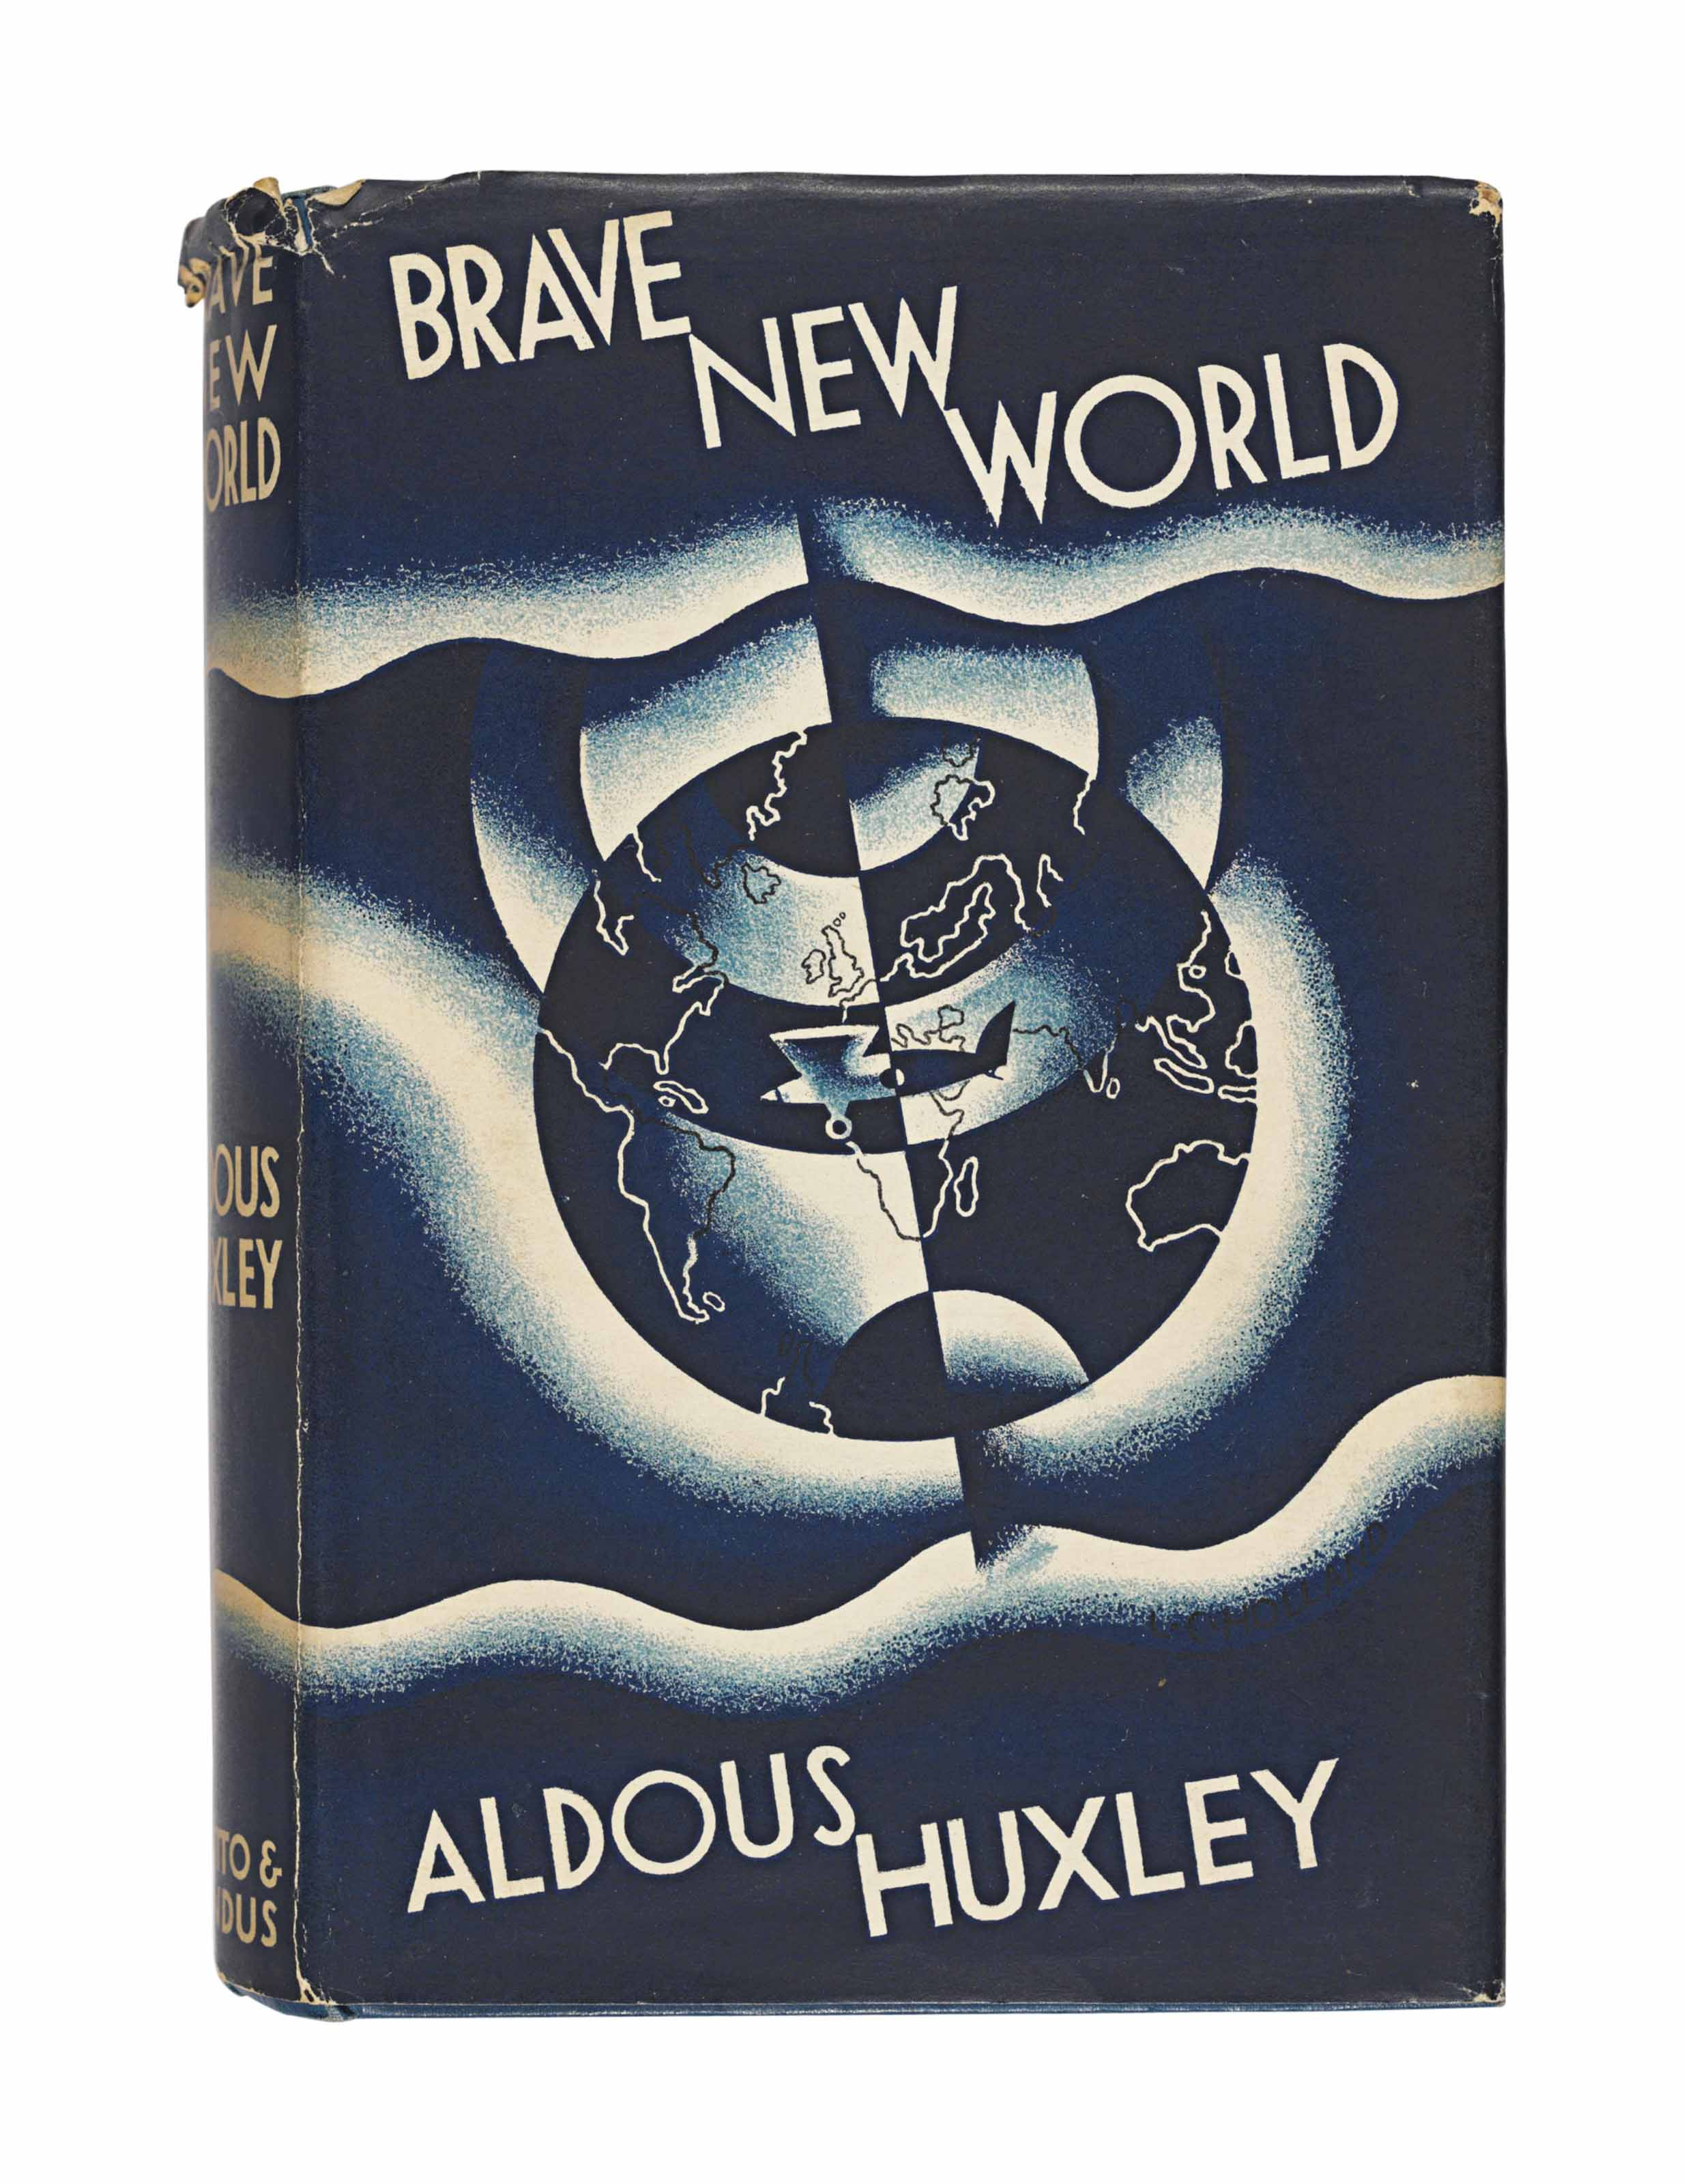 who wrote brave new world